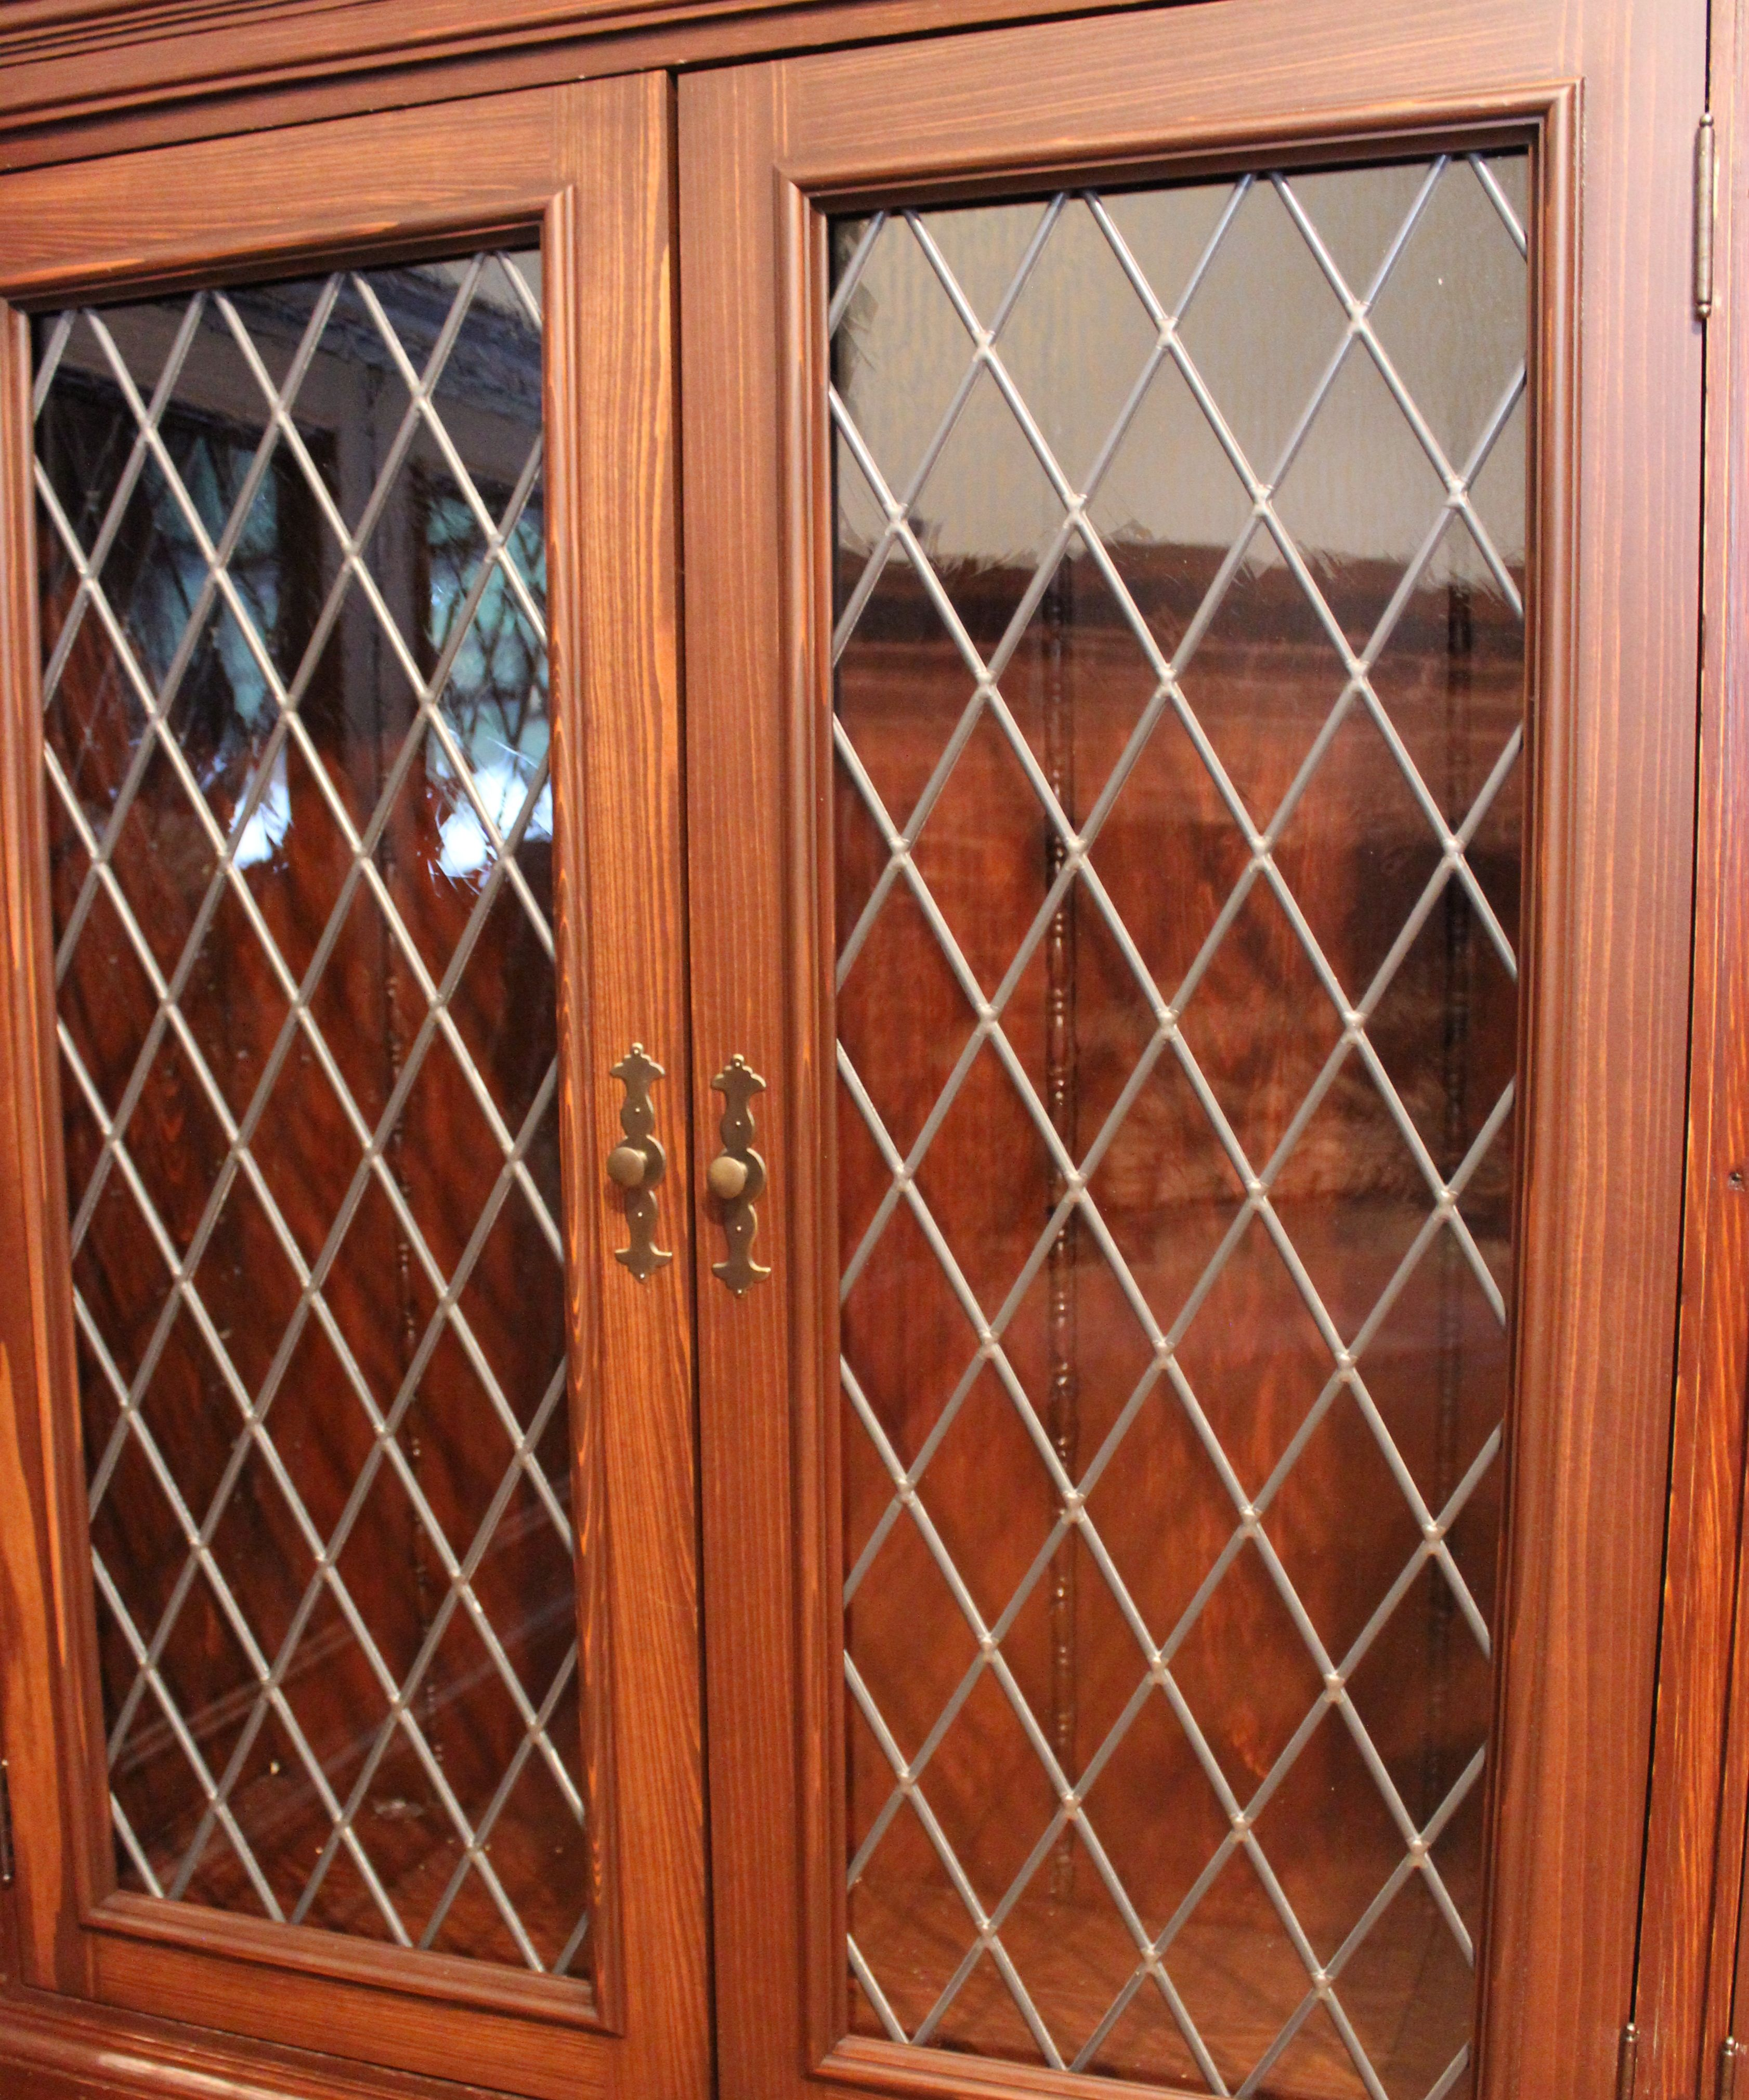 Custom Made Cypress Wood Cabinet Doors With Leaded Glass